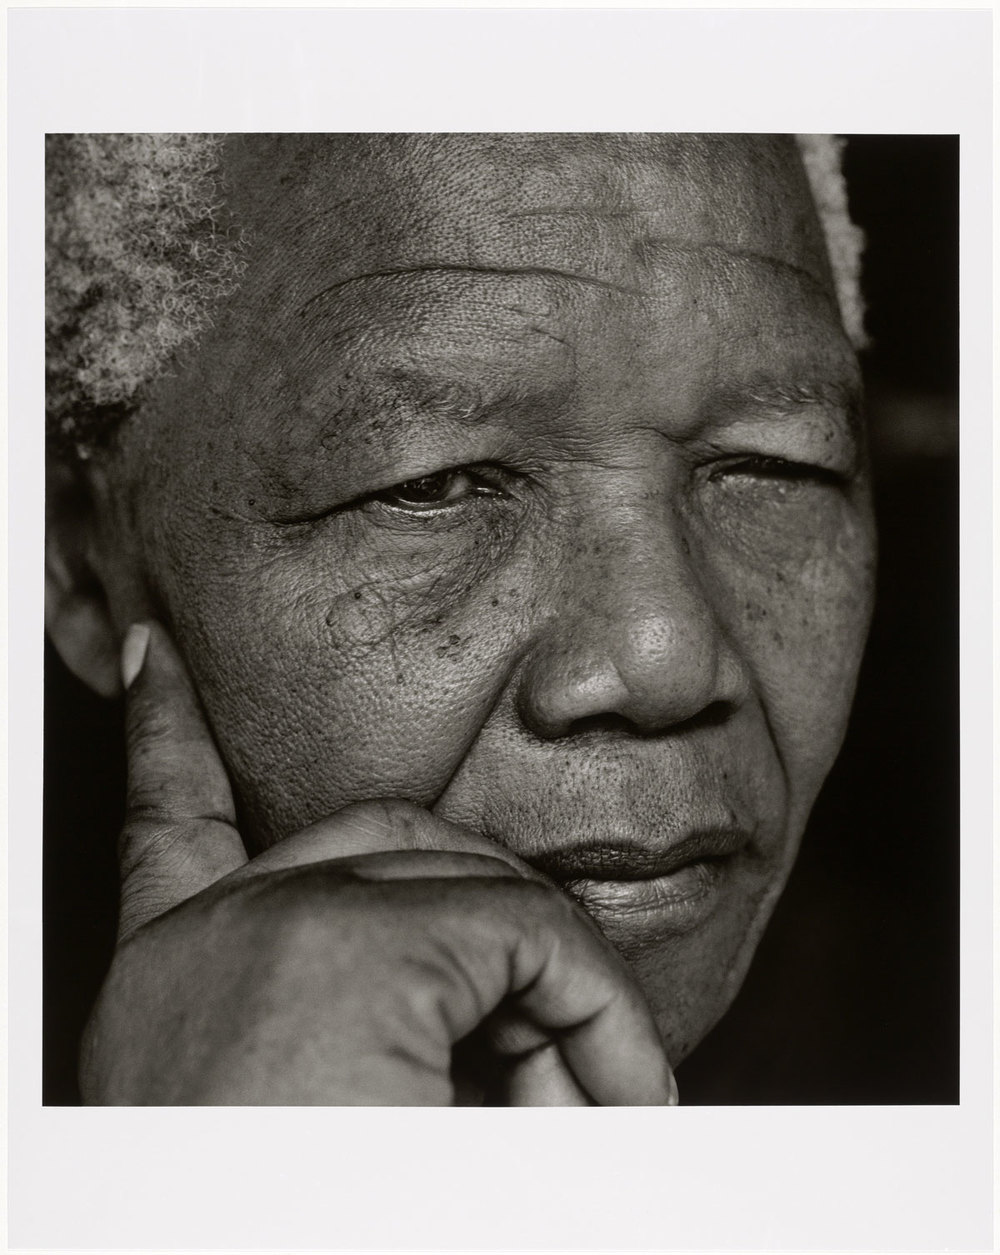 Herb Ritts (American, 1952-2002) Nelson Mandela, Johannesburg 1994 Gelatin silver print Museum of Fine Arts, Boston Gift of Herb Ritts Foundation © Herb Ritts Foundation Photograph © Museum of Fine Arts, Boston